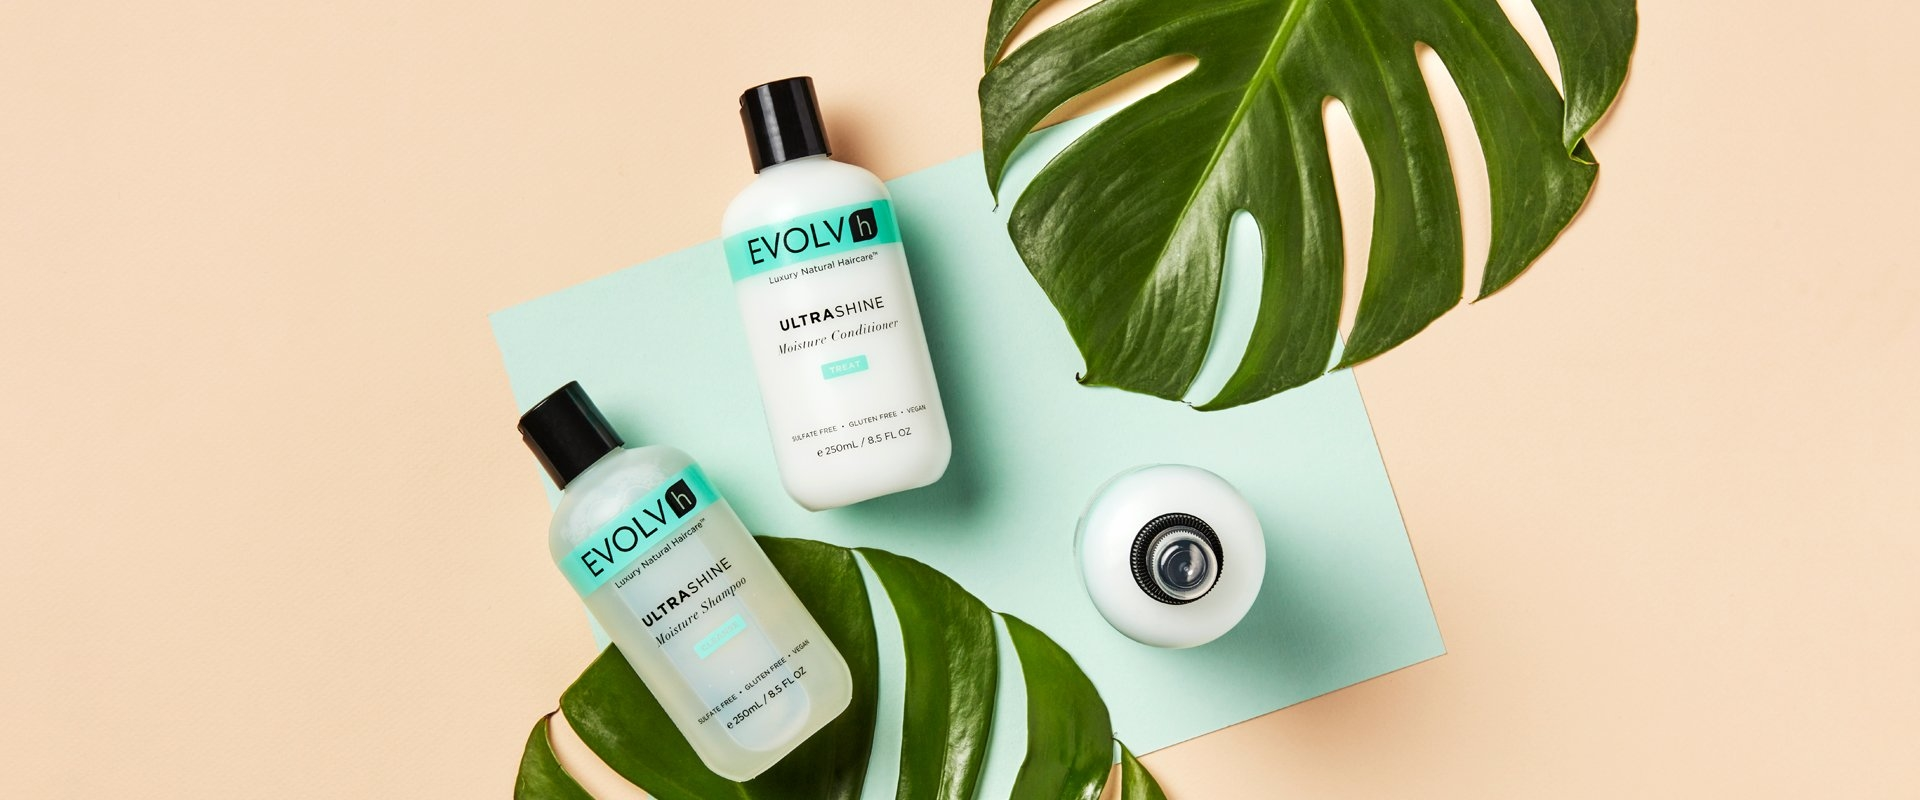 Evolvh hair care branding